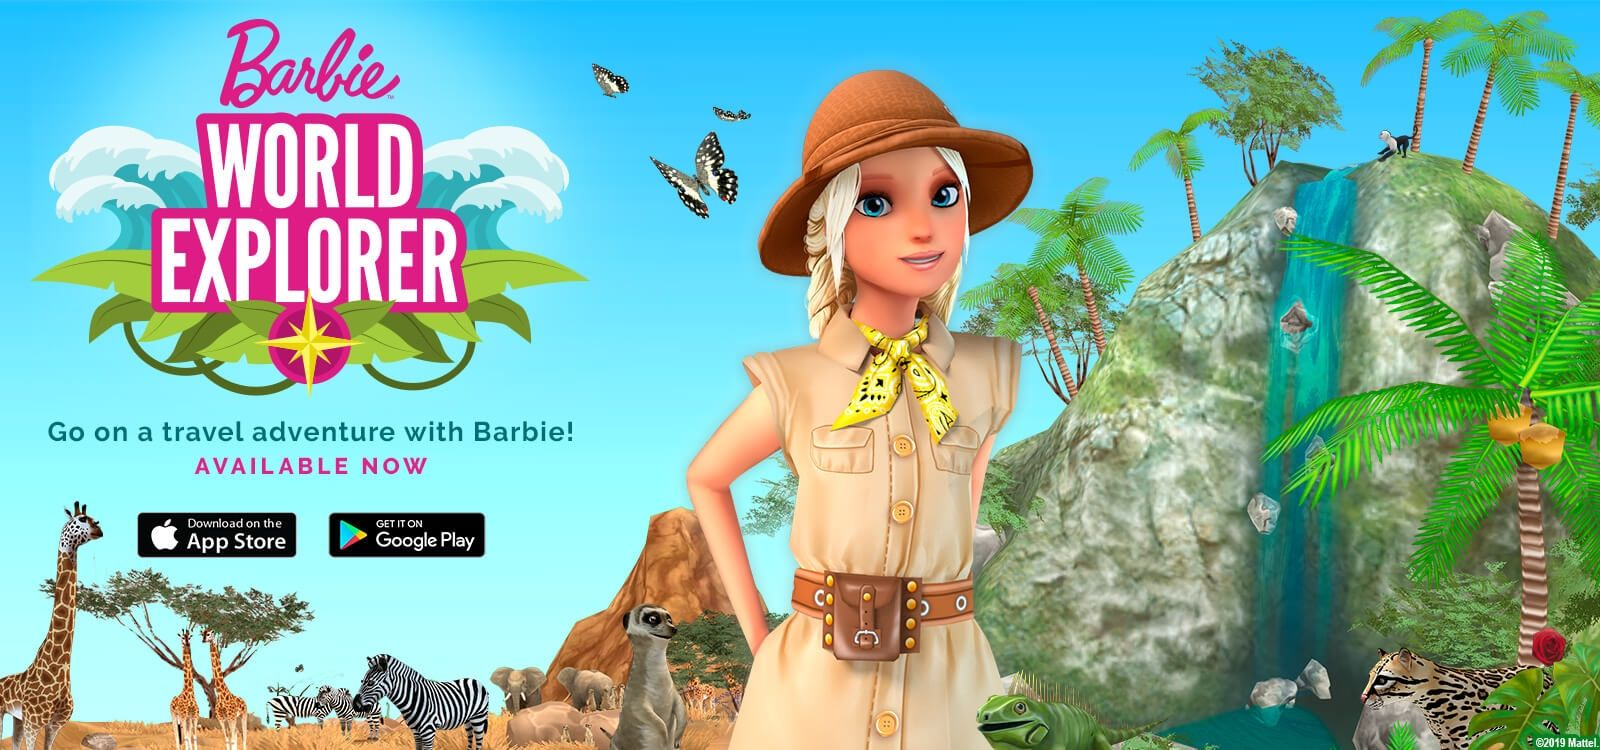 World Explorer Travel App Barbie Toys Barbie Playset